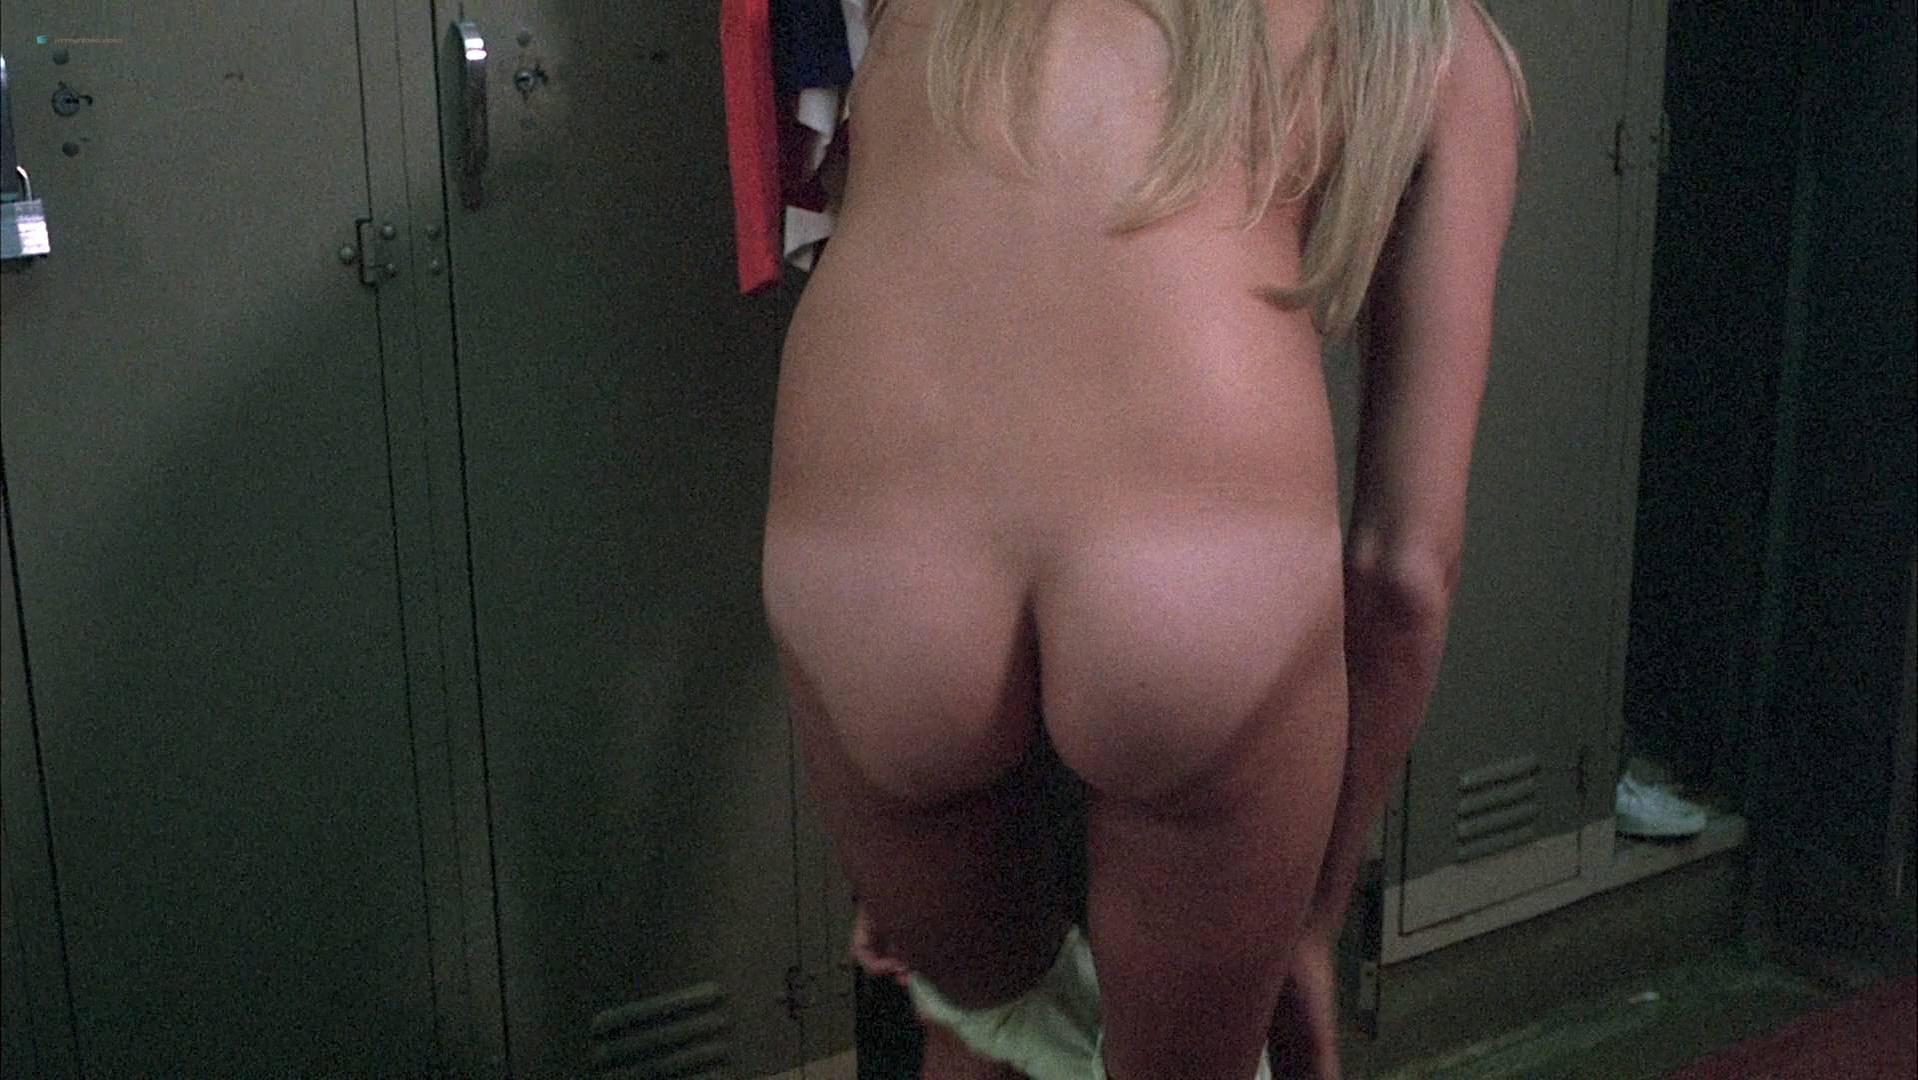 Cheryl Smith nude, Susan Player nude, Jennifer Ashley nude - The Pom Pom Girls (1976)